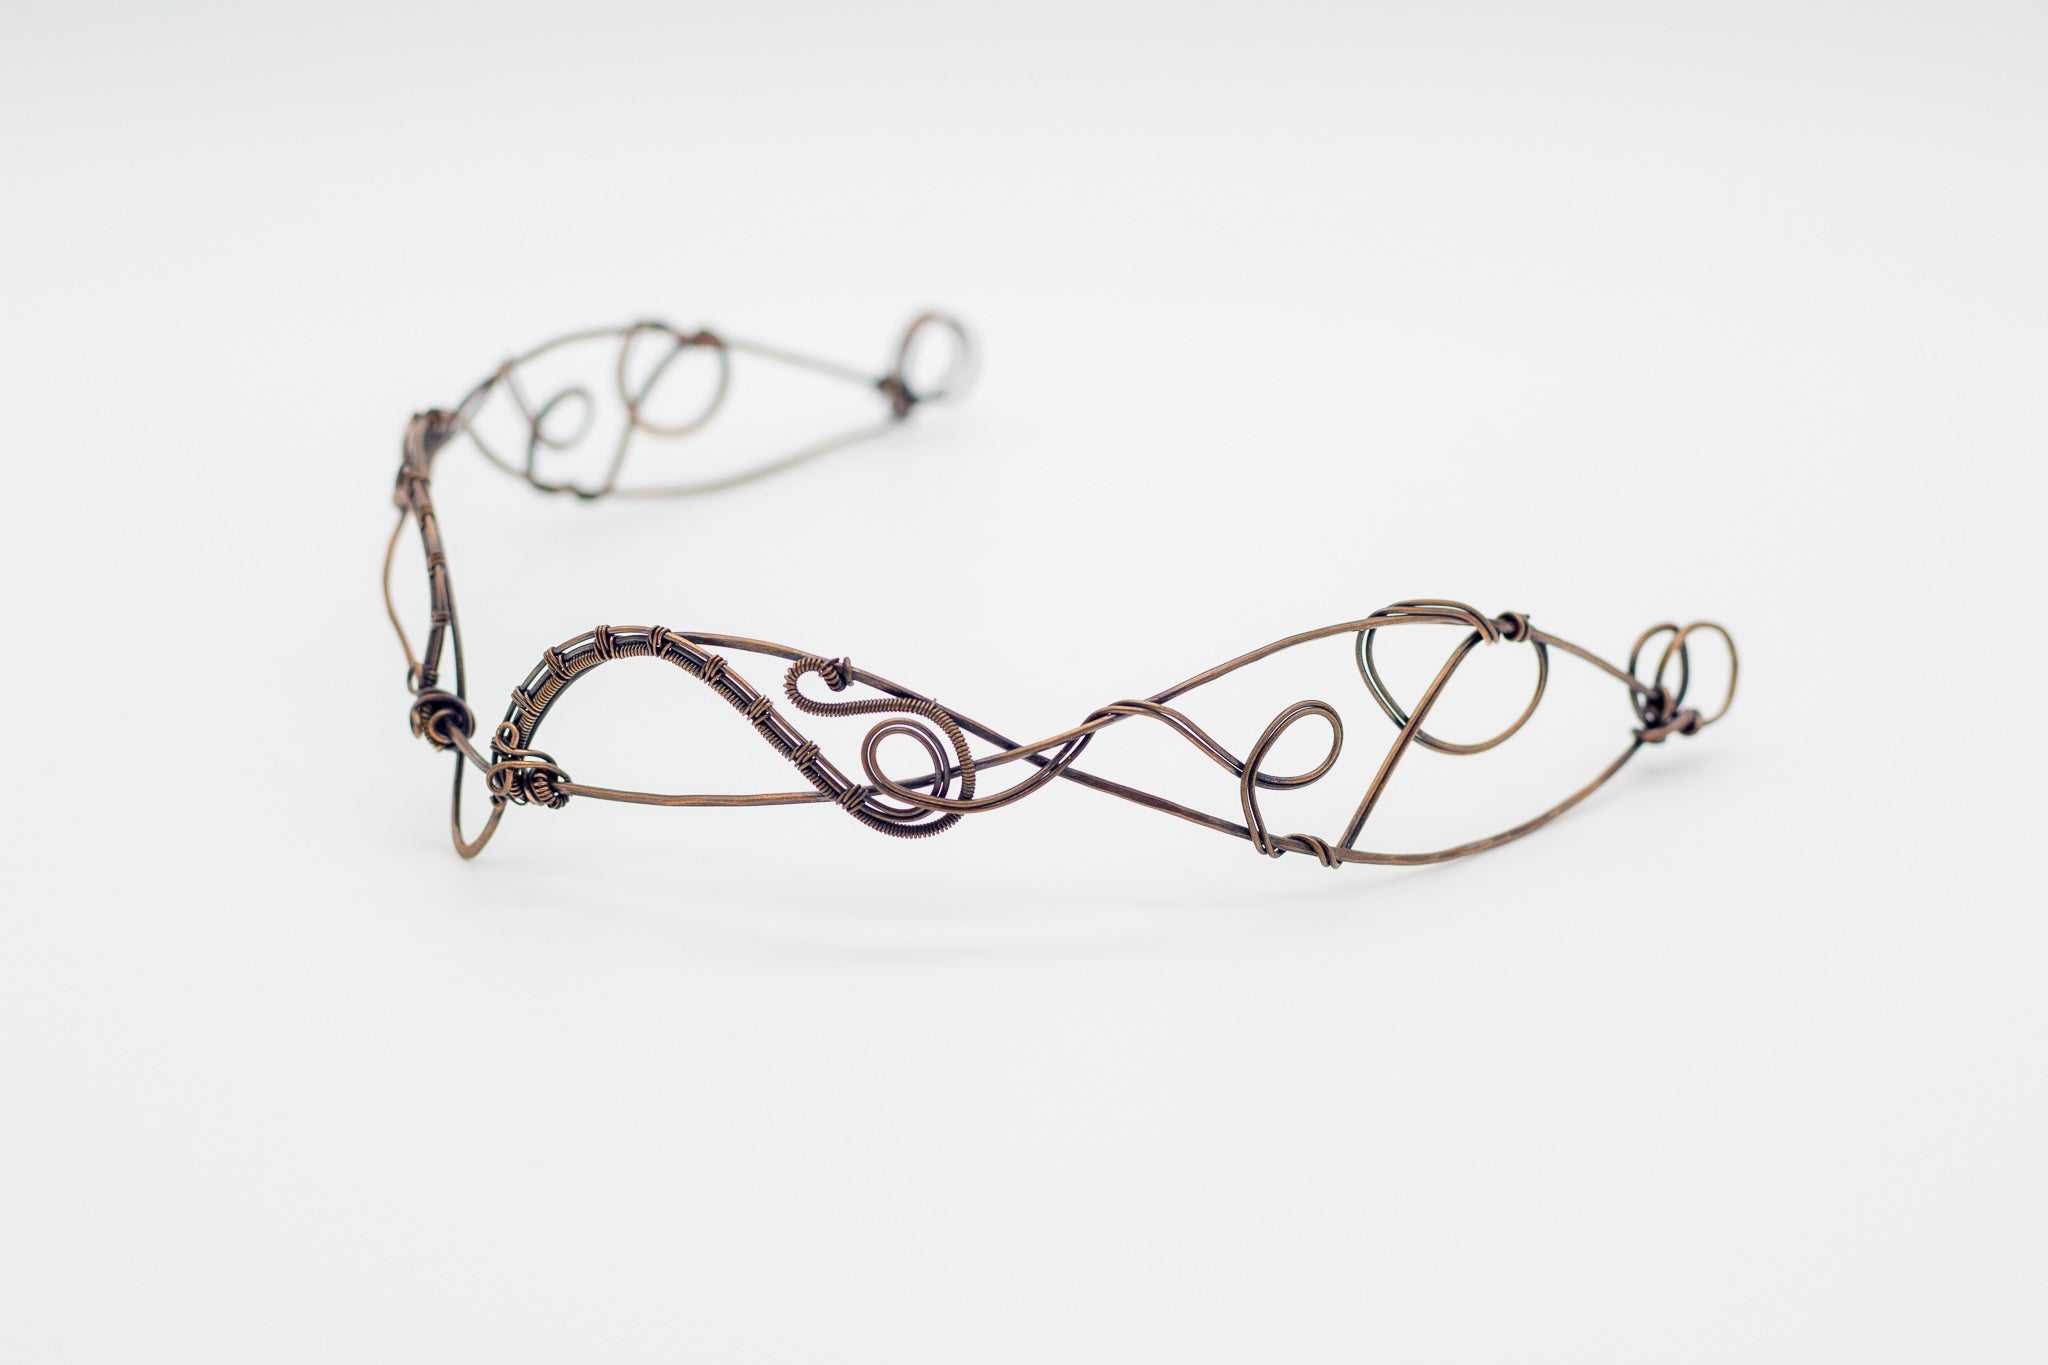 Copper wire wrapped circlet or headpiece